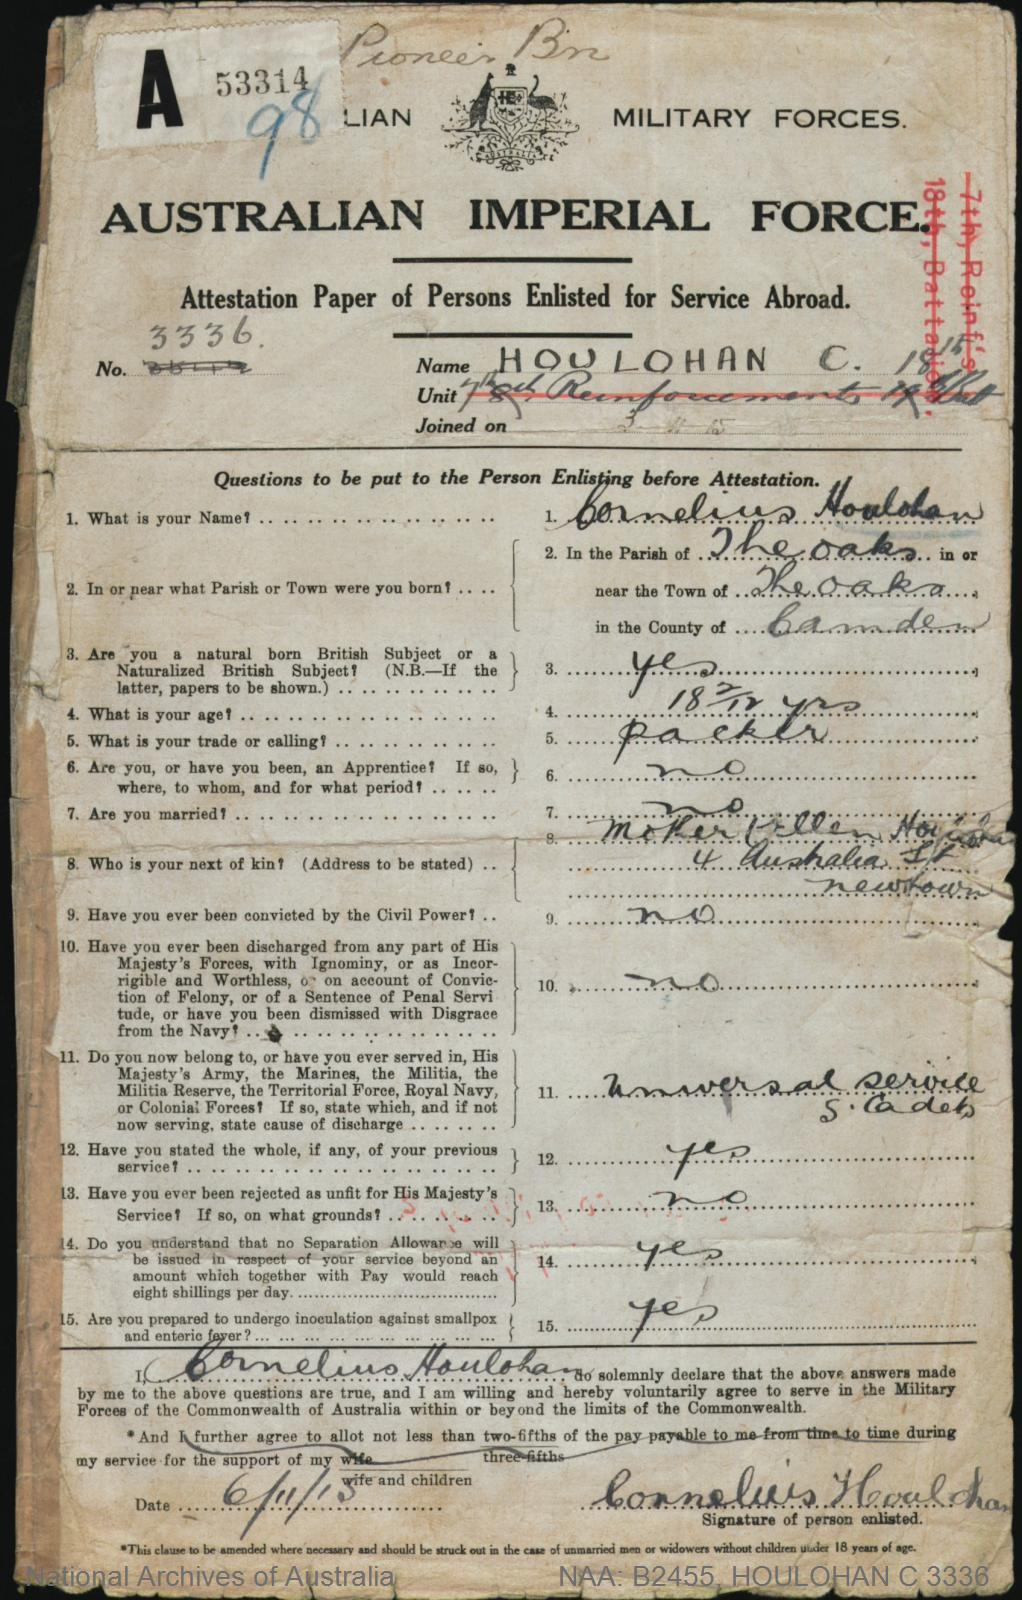 HOULOHAN Cornelias : Service Number - 3336 : Place of Birth - Camden NSW : Place of Enlistment - Holsworthy NSW : Next of Kin - (Mother) HOULOHAN Ellen